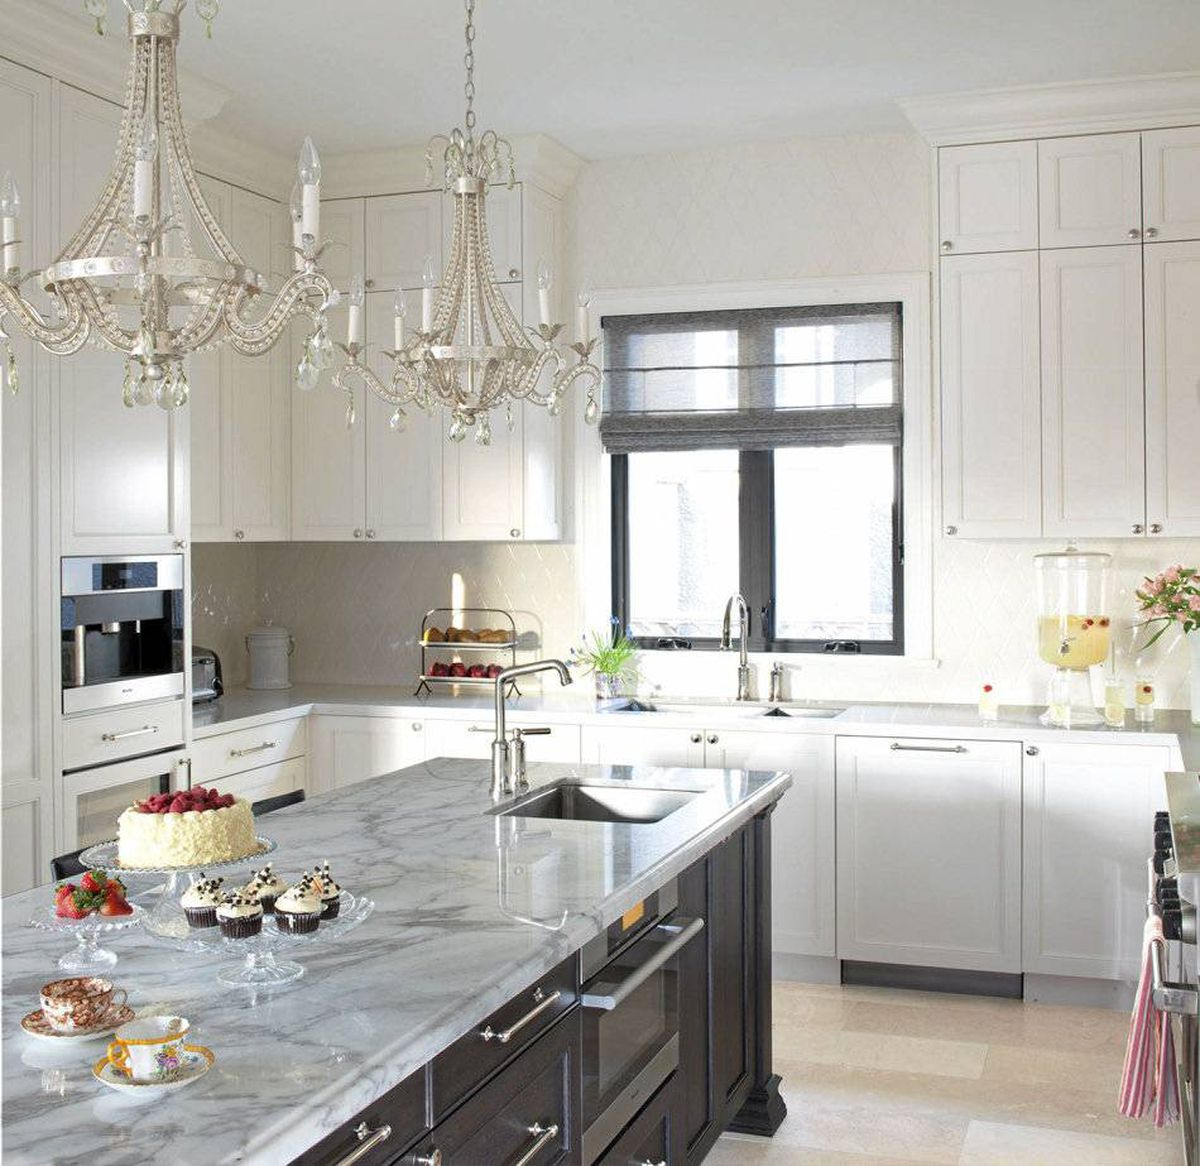 The designer created a perimeter whose layered ivory felt light and open. It started with luxurious backsplash tile, a diamond pattern of handmade ceramic by Anne Saks. Then, a matching quartz countertop and a warm white on the cabinet doors was layered on.